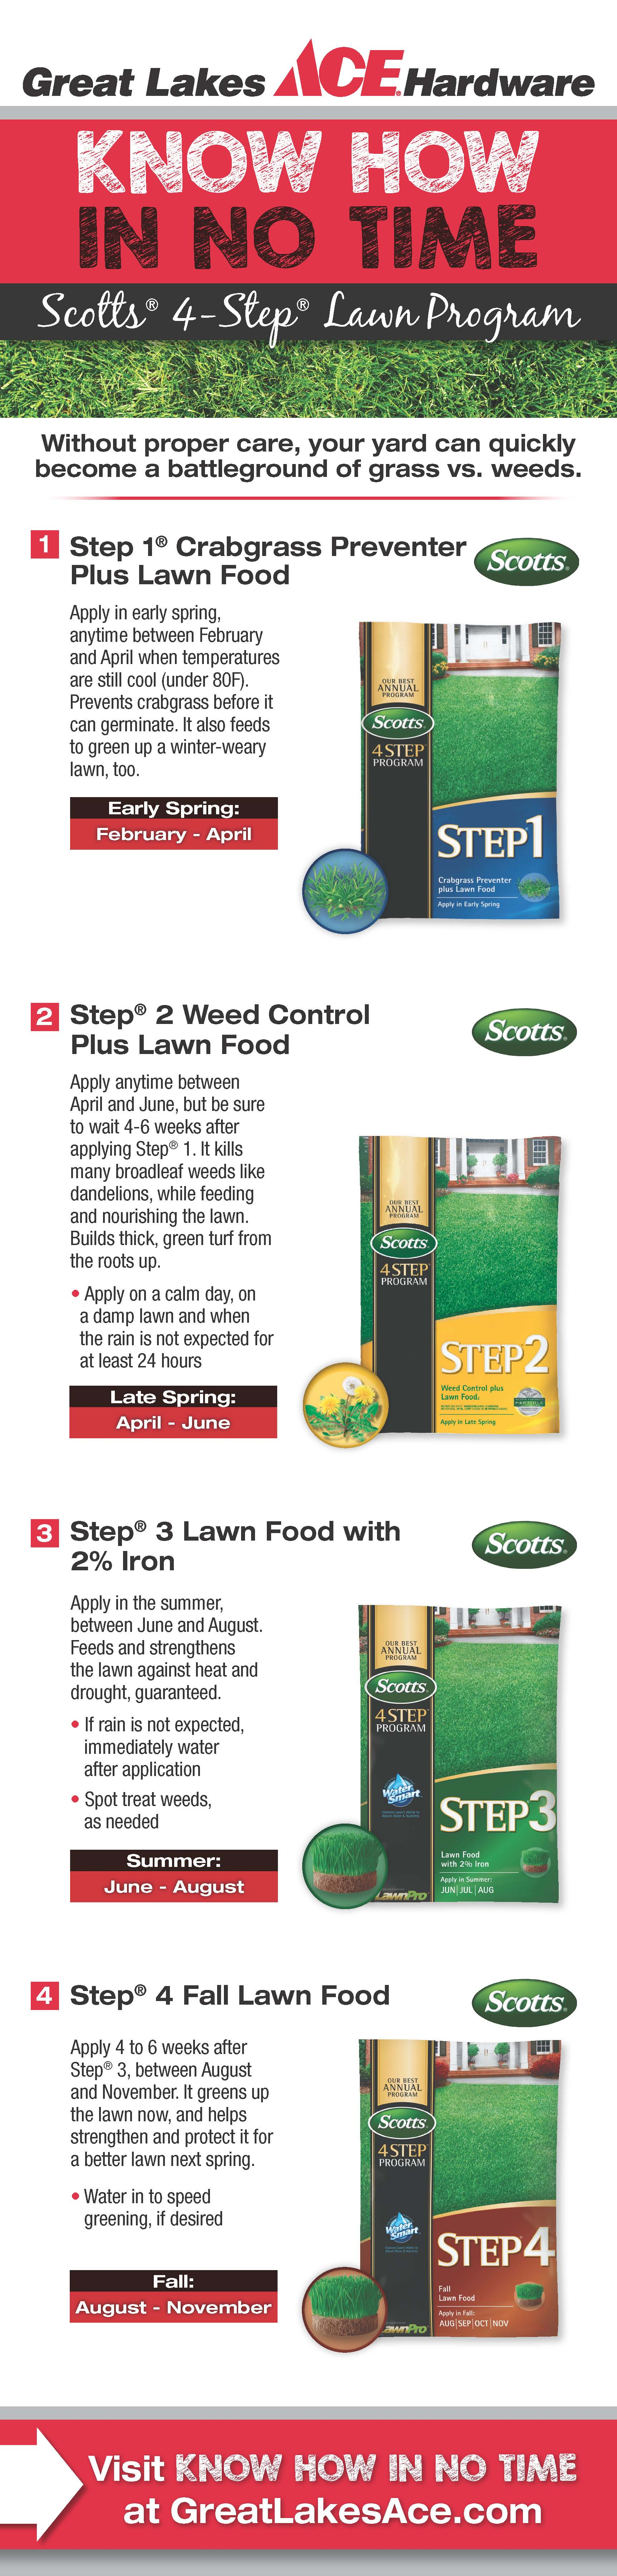 Achieve your perfect lawn with Scotts 4-Step Lawn Program!